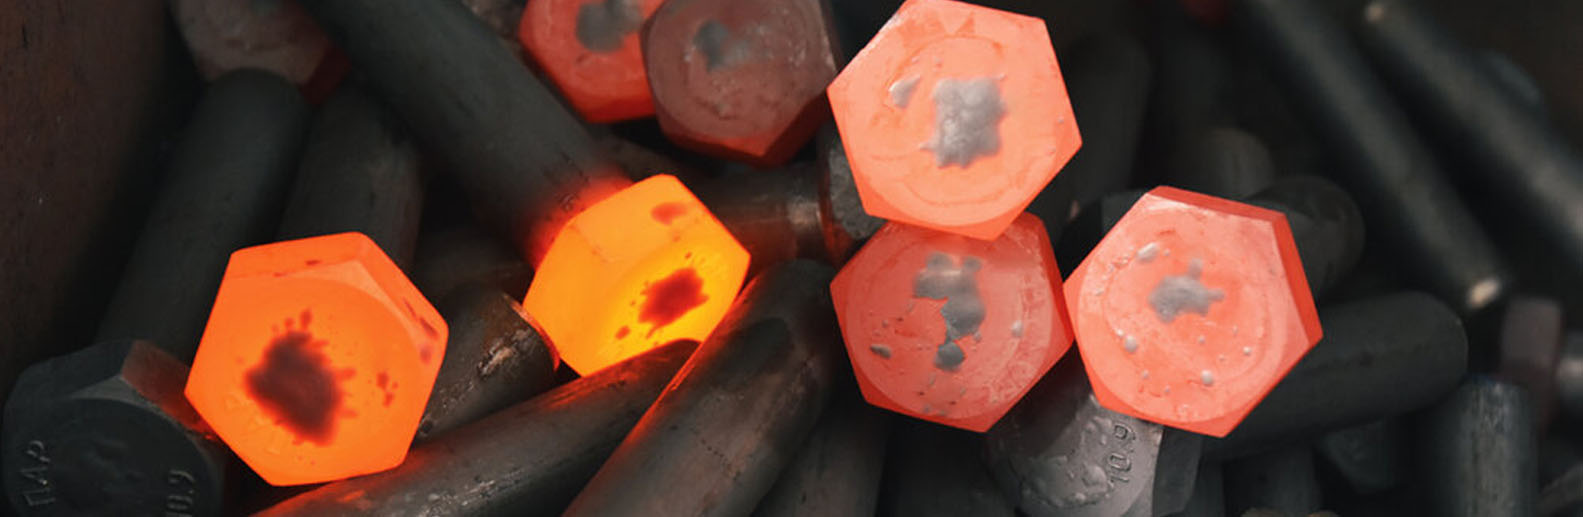 bolt manufacturing In India